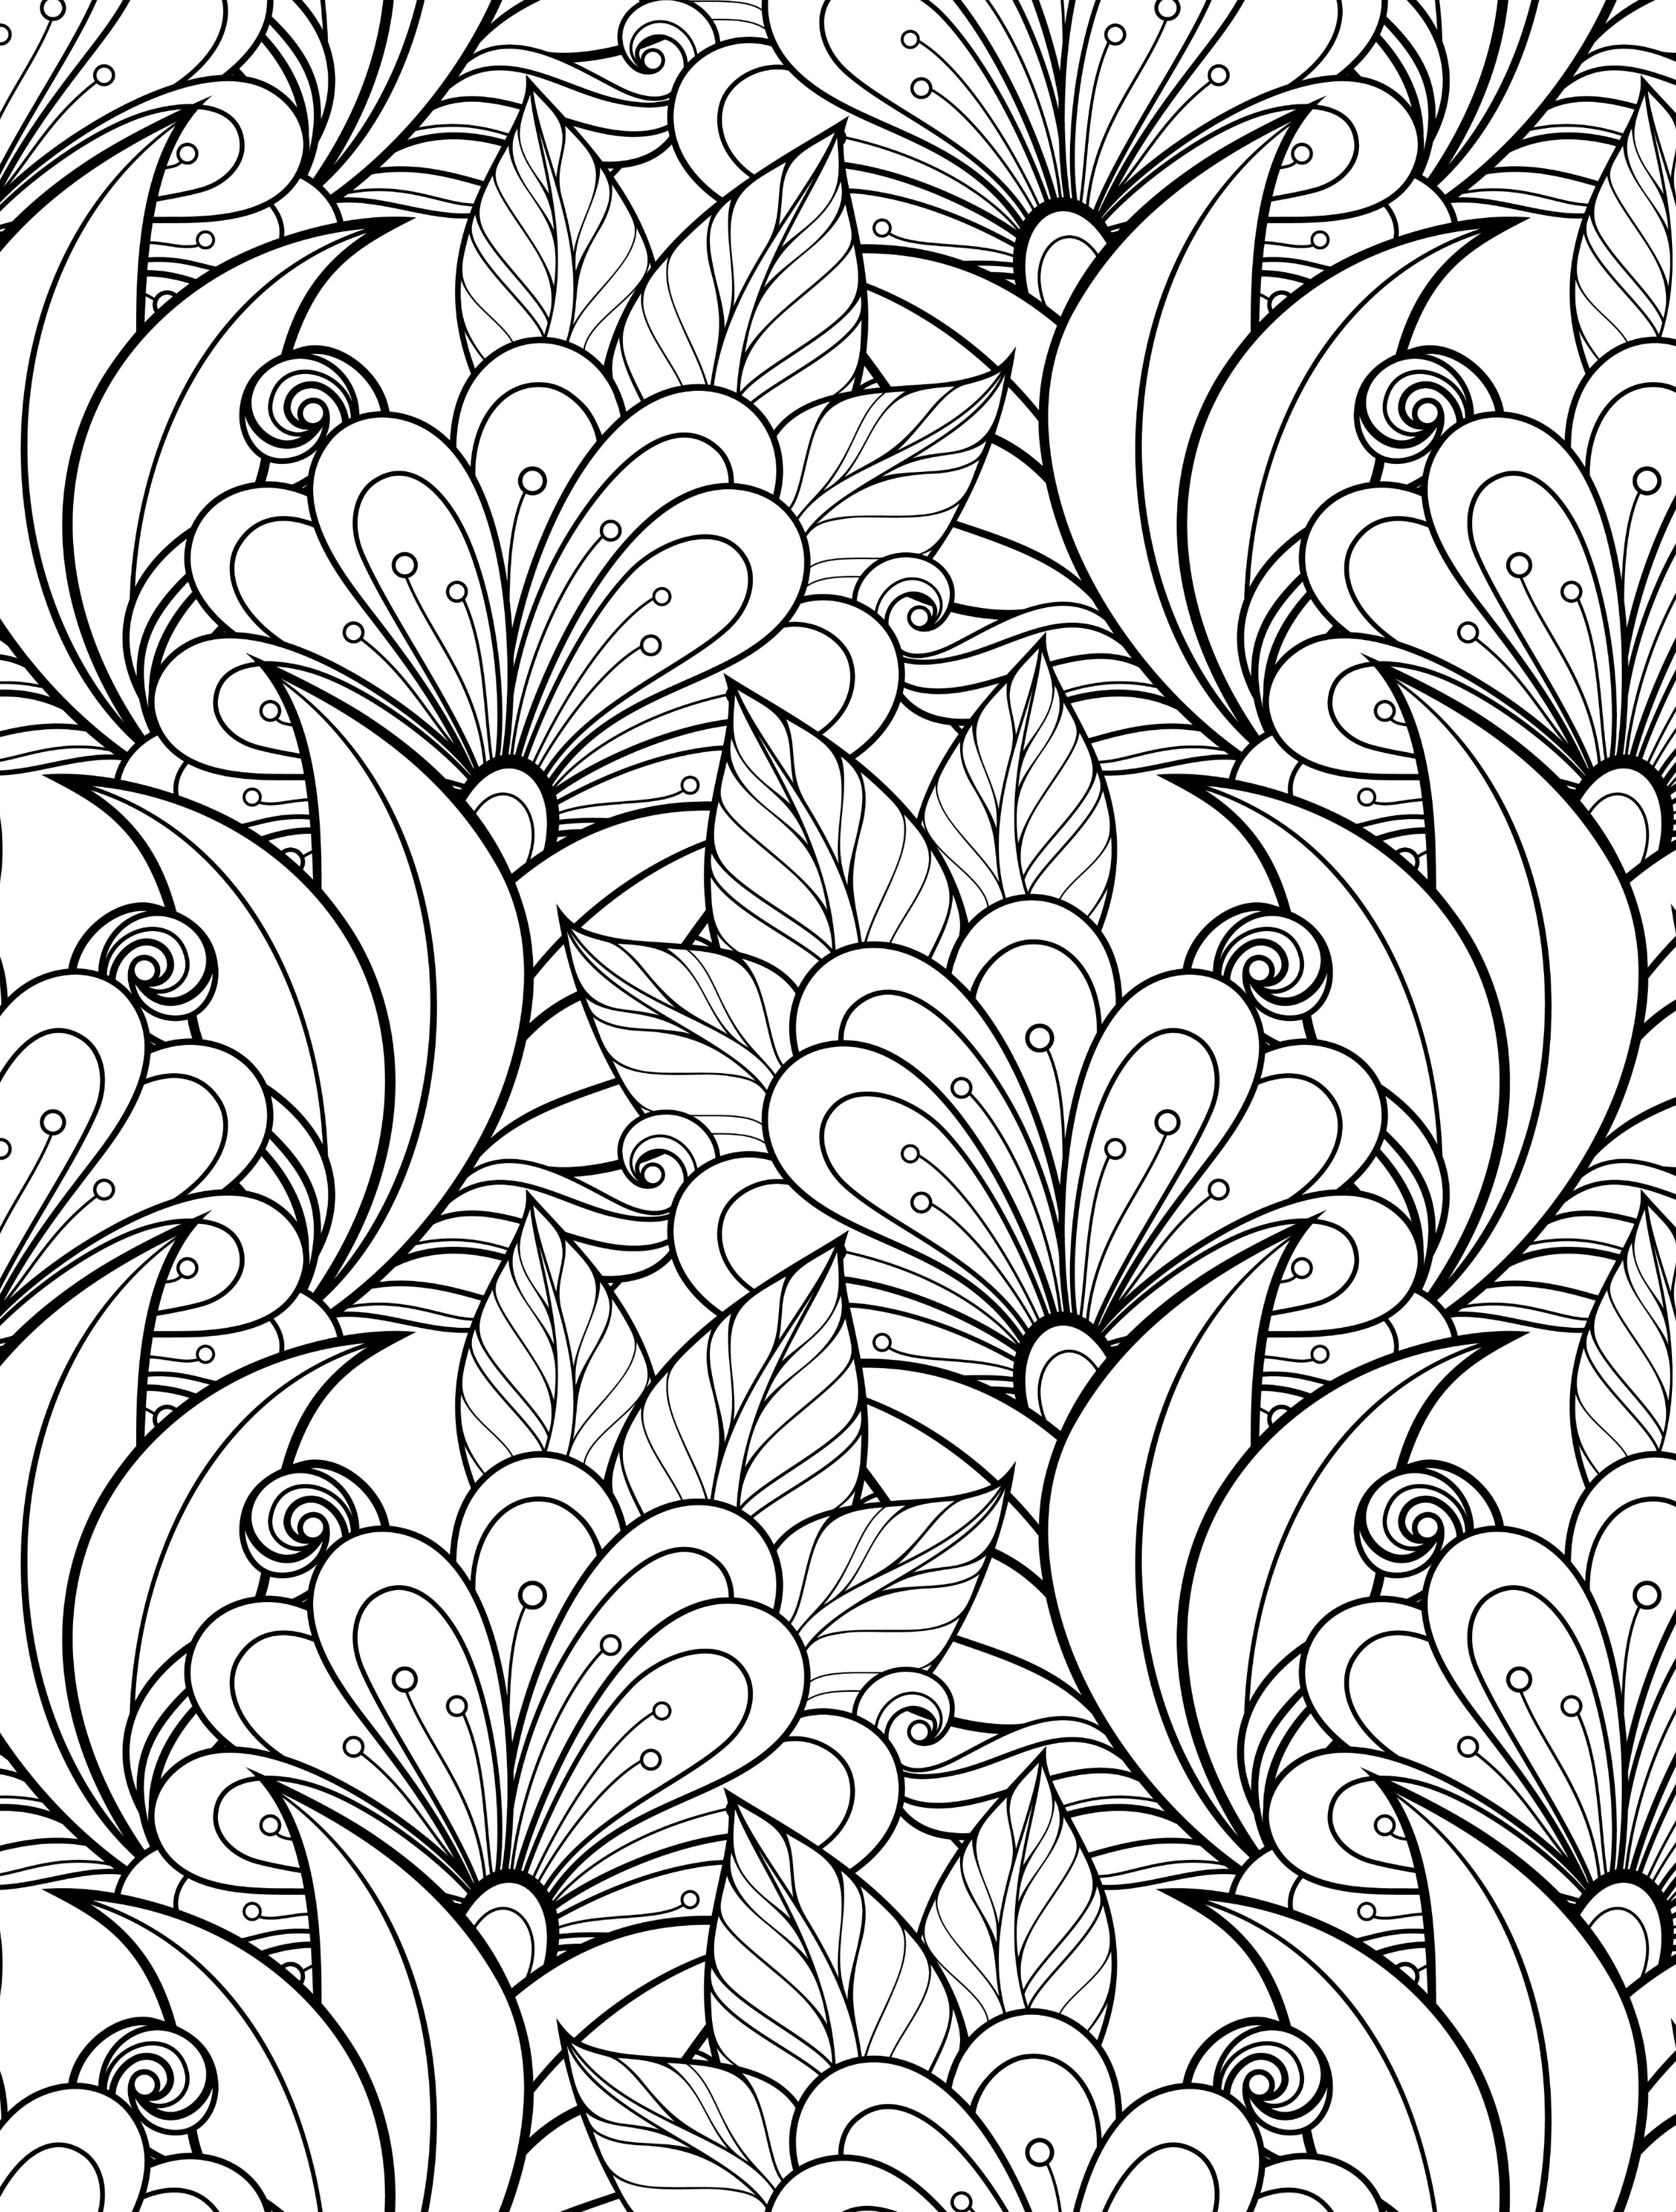 24 More Free Printable Adult Coloring Pages - Page 7 Of 25 - Nerdy Mamma - Free Printable Coloring Books For Adults